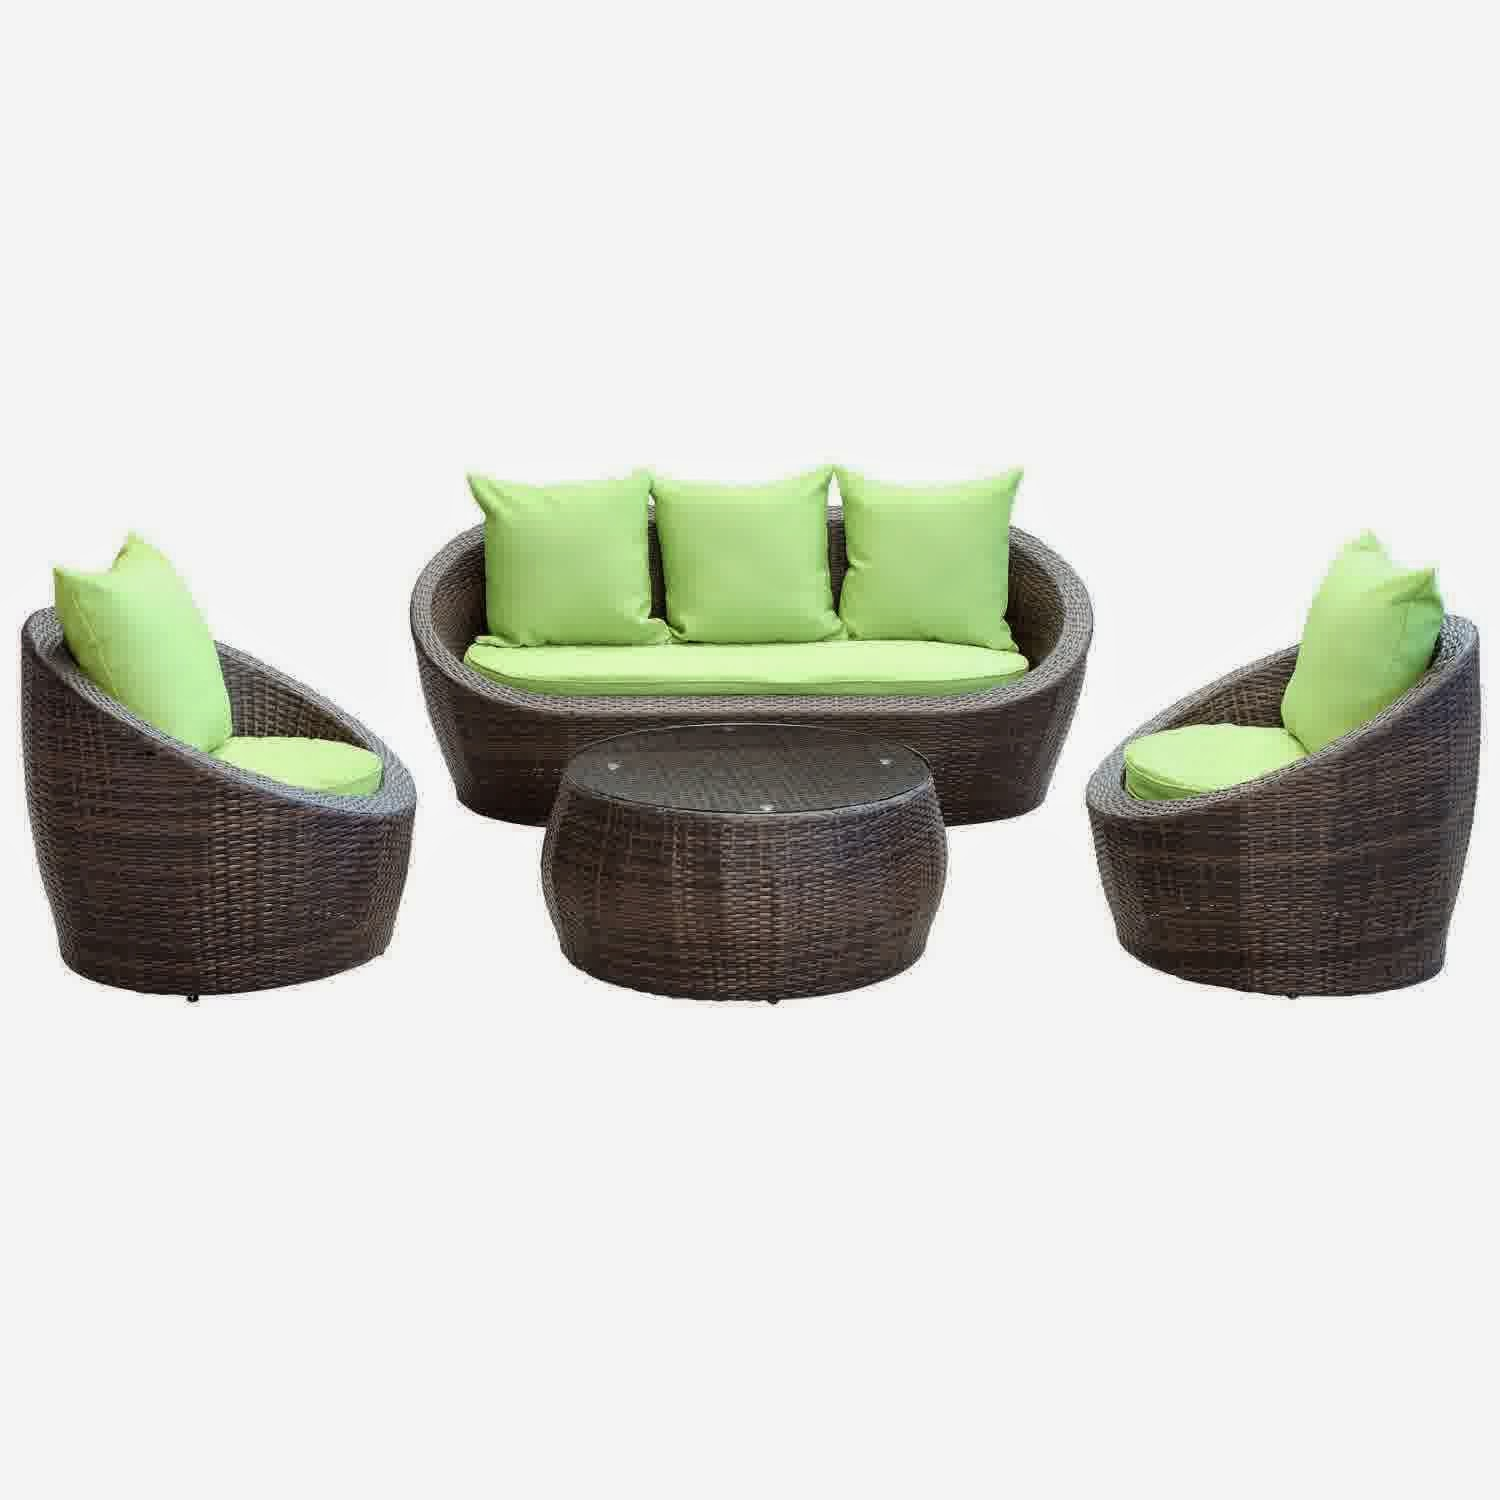 4 Piece Wicker Patio Set Patio Design Ideas